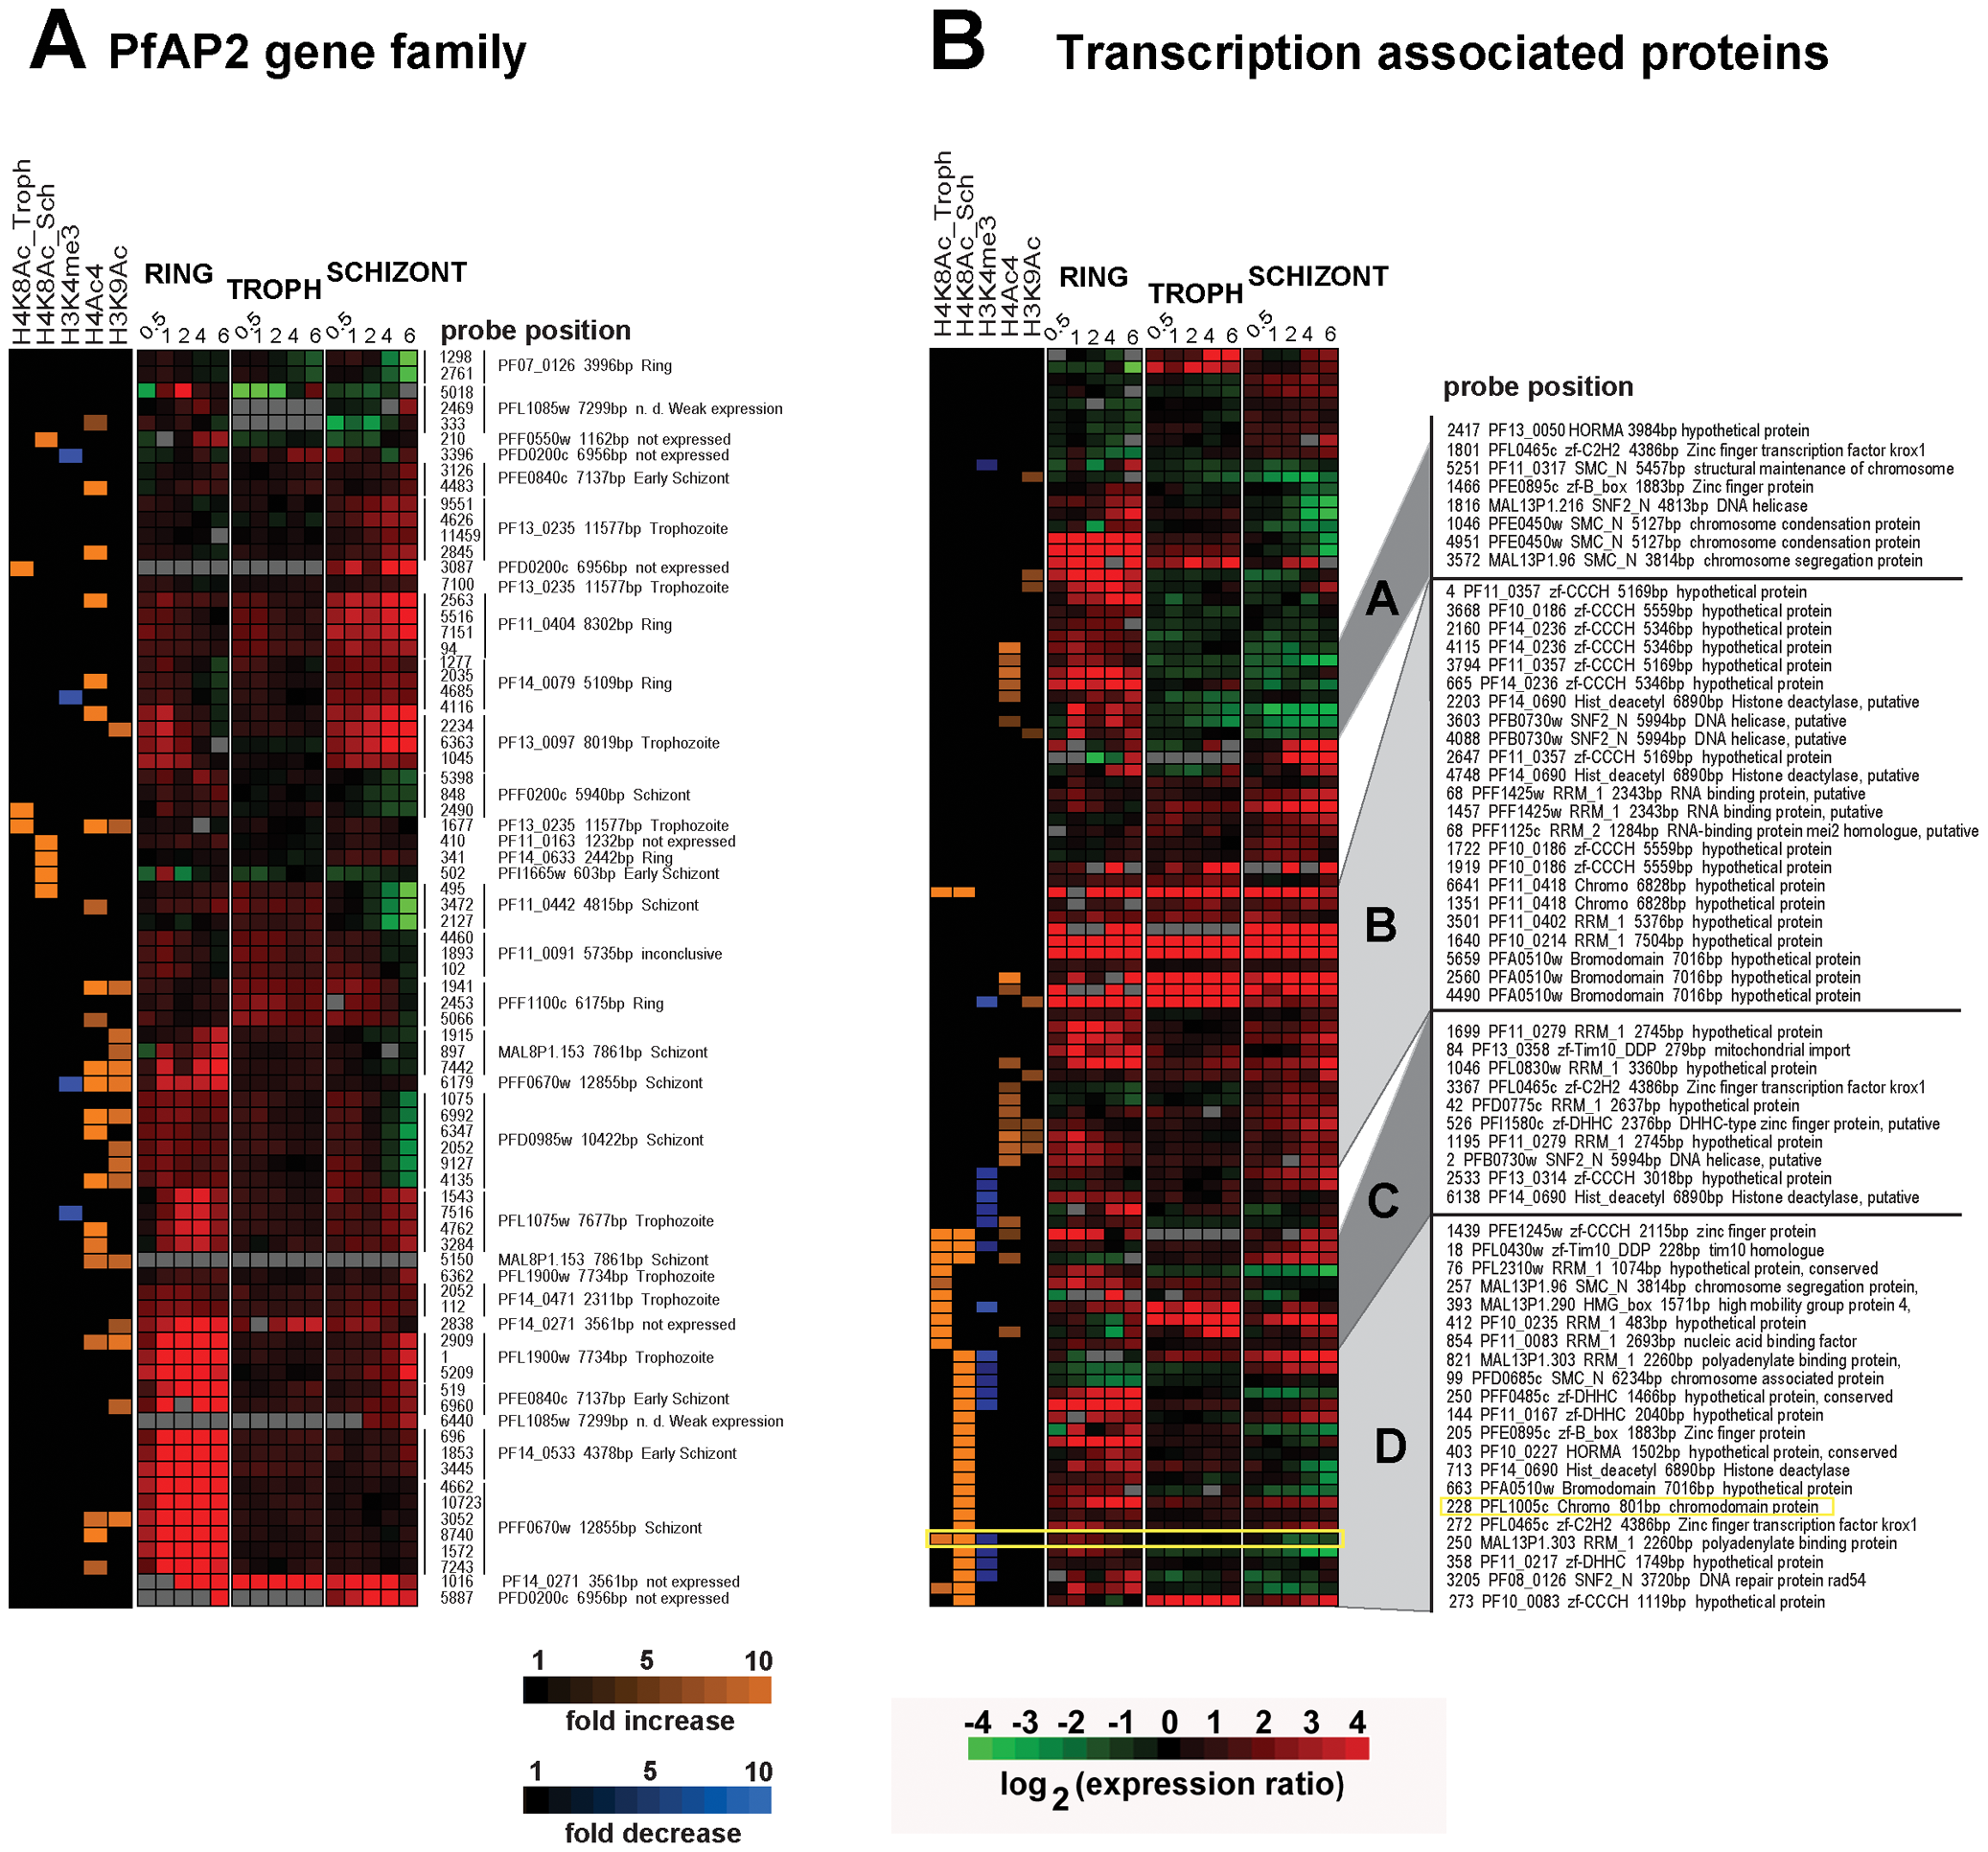 Inhibition of HDACs induces expression of transcription associated proteins.